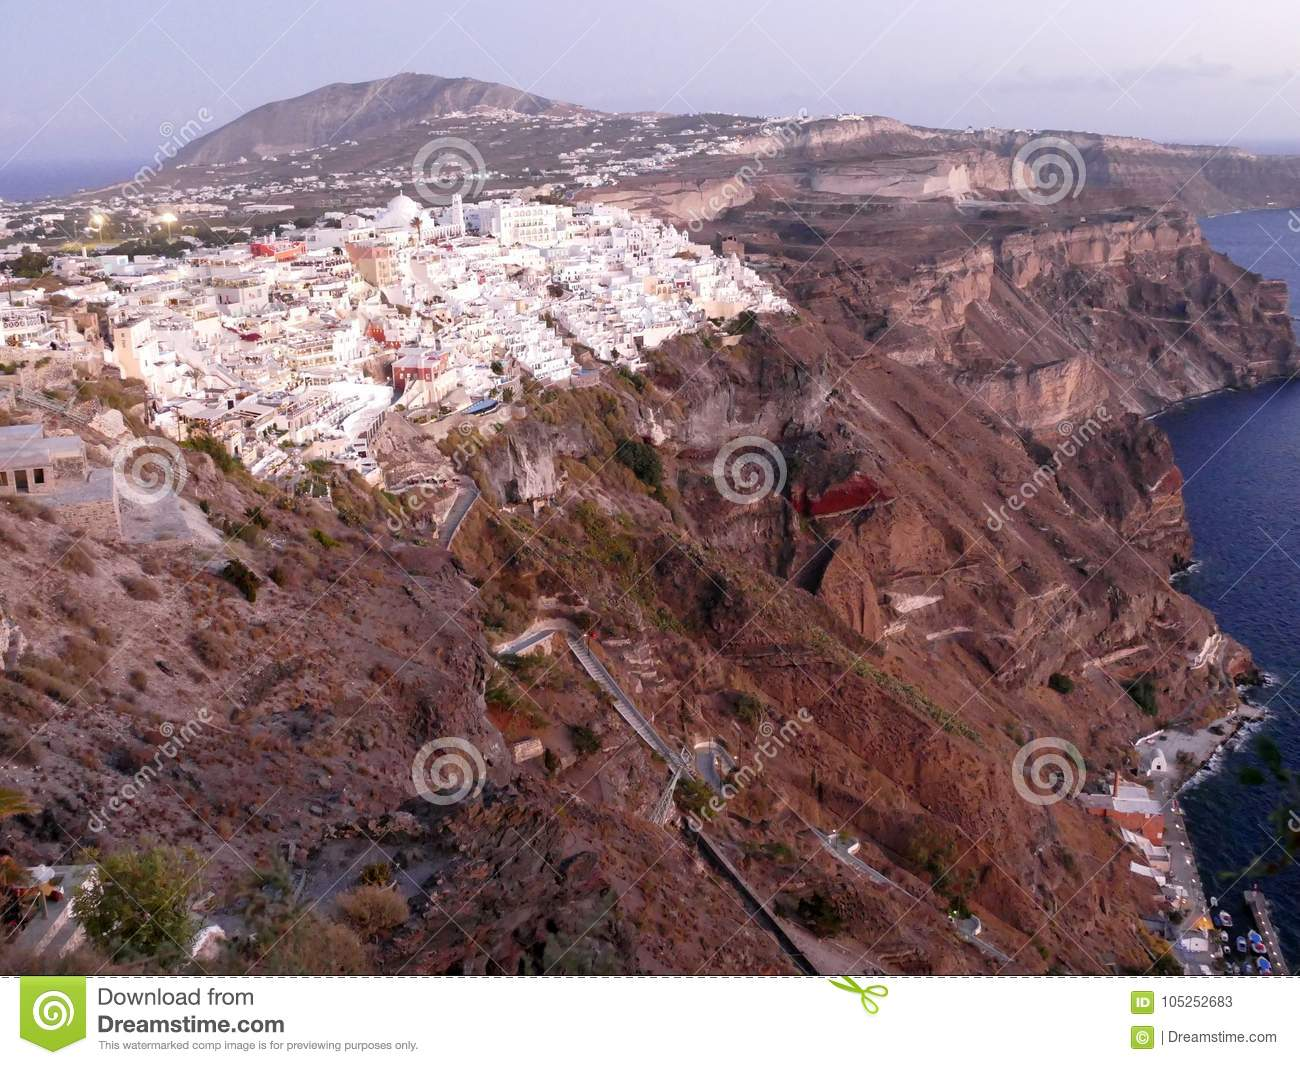 View of Fira in Santorini at sunset, viewed from above